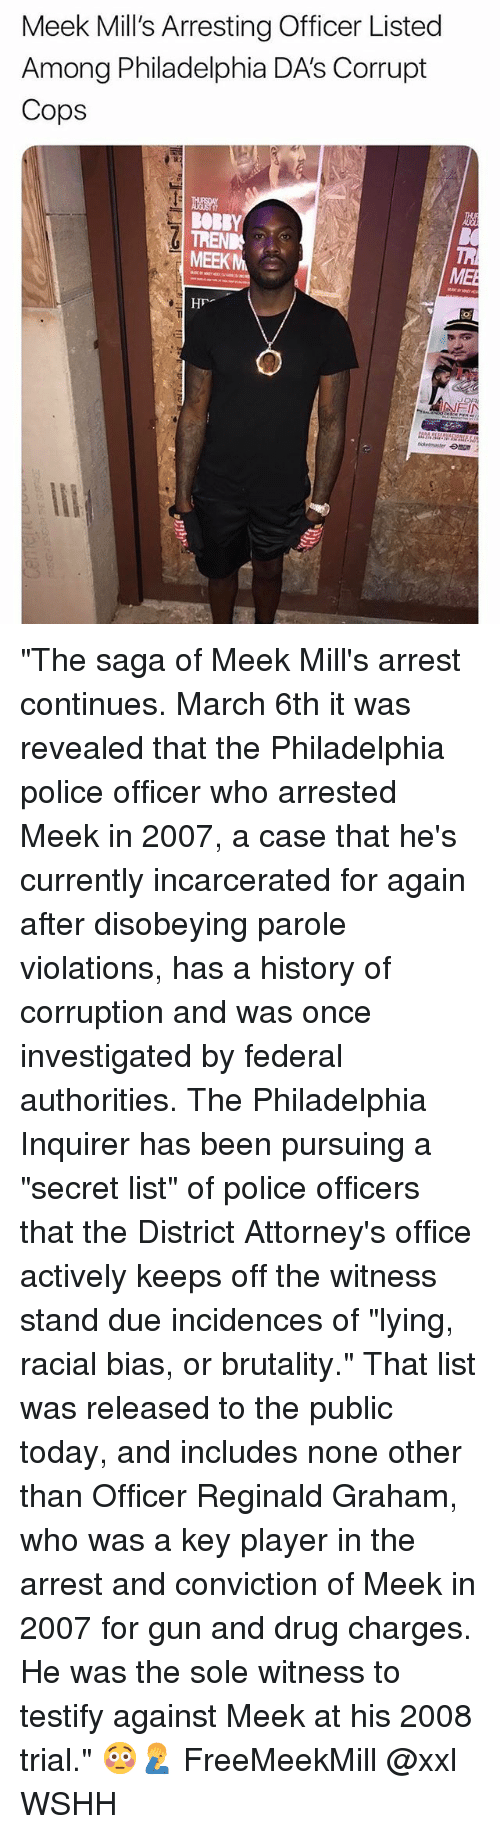 "Memes, Police, and Wshh: Meek Mill's Arresting Officer Listed  Among Philadelphia DA'S Corrupt  Cops  Tio  OBRY  MEEKM) :  ME ""The saga of Meek Mill's arrest continues. March 6th it was revealed that the Philadelphia police officer who arrested Meek in 2007, a case that he's currently incarcerated for again after disobeying parole violations, has a history of corruption and was once investigated by federal authorities. The Philadelphia Inquirer has been pursuing a ""secret list"" of police officers that the District Attorney's office actively keeps off the witness stand due incidences of ""lying, racial bias, or brutality."" That list was released to the public today, and includes none other than Officer Reginald Graham, who was a key player in the arrest and conviction of Meek in 2007 for gun and drug charges. He was the sole witness to testify against Meek at his 2008 trial."" 😳🤦‍♂️ FreeMeekMill @xxl WSHH"